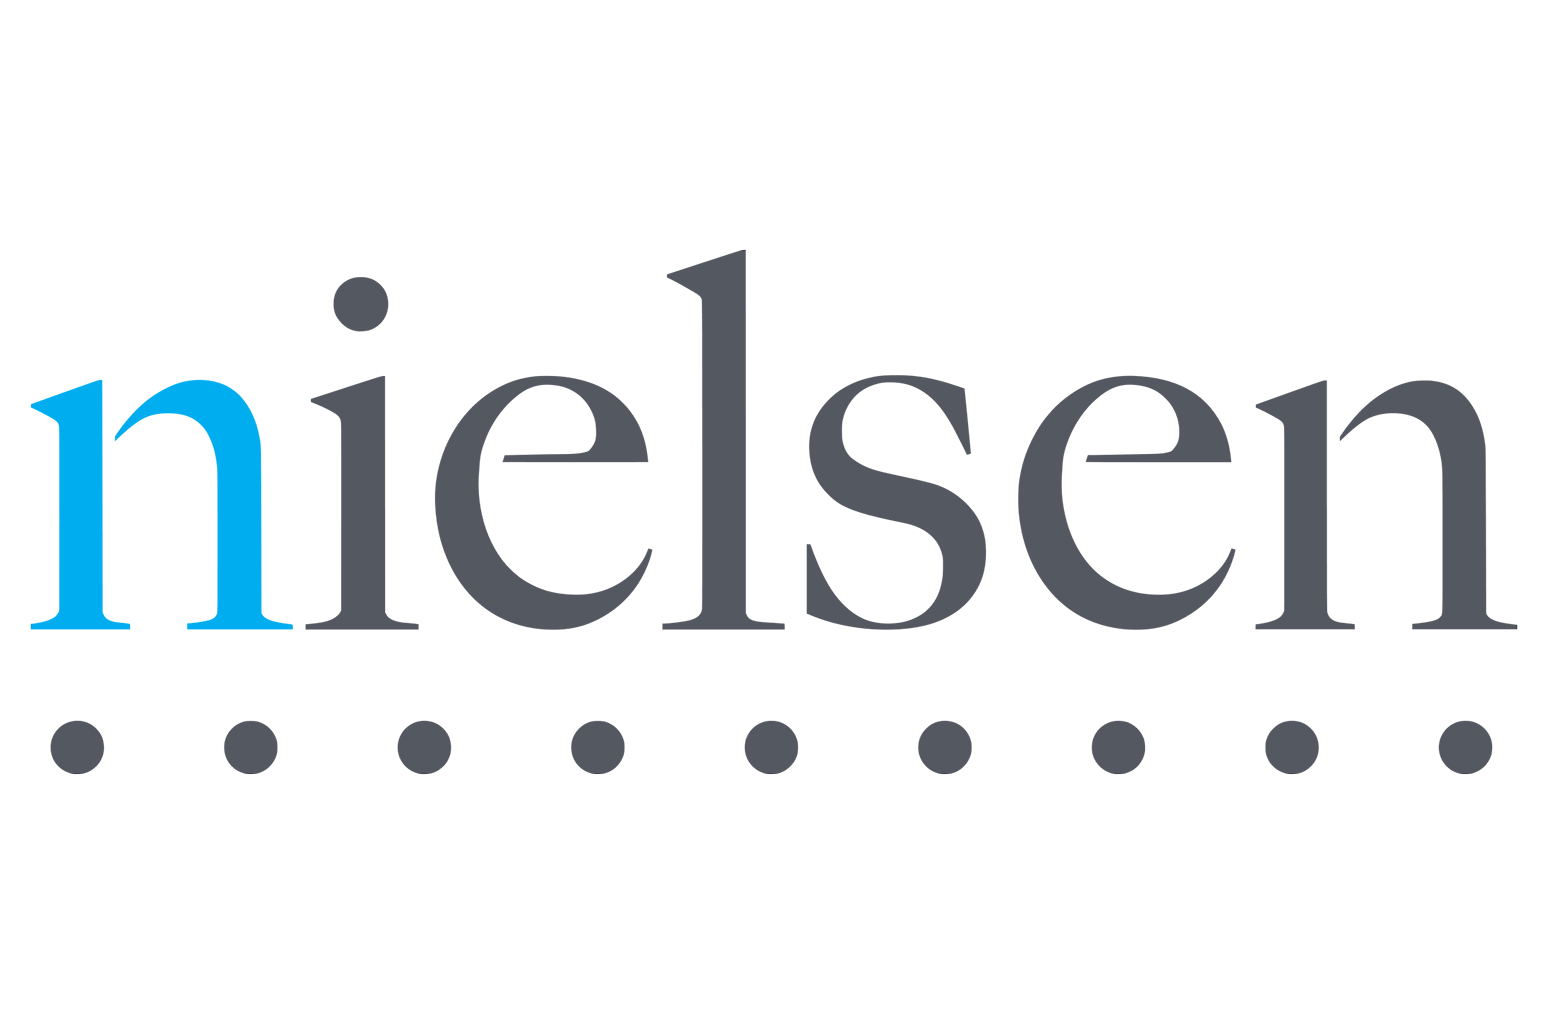 Nielsen NV (NLSN) Announces Quarterly Earnings Results, Misses Expectations By $0.26 EPS